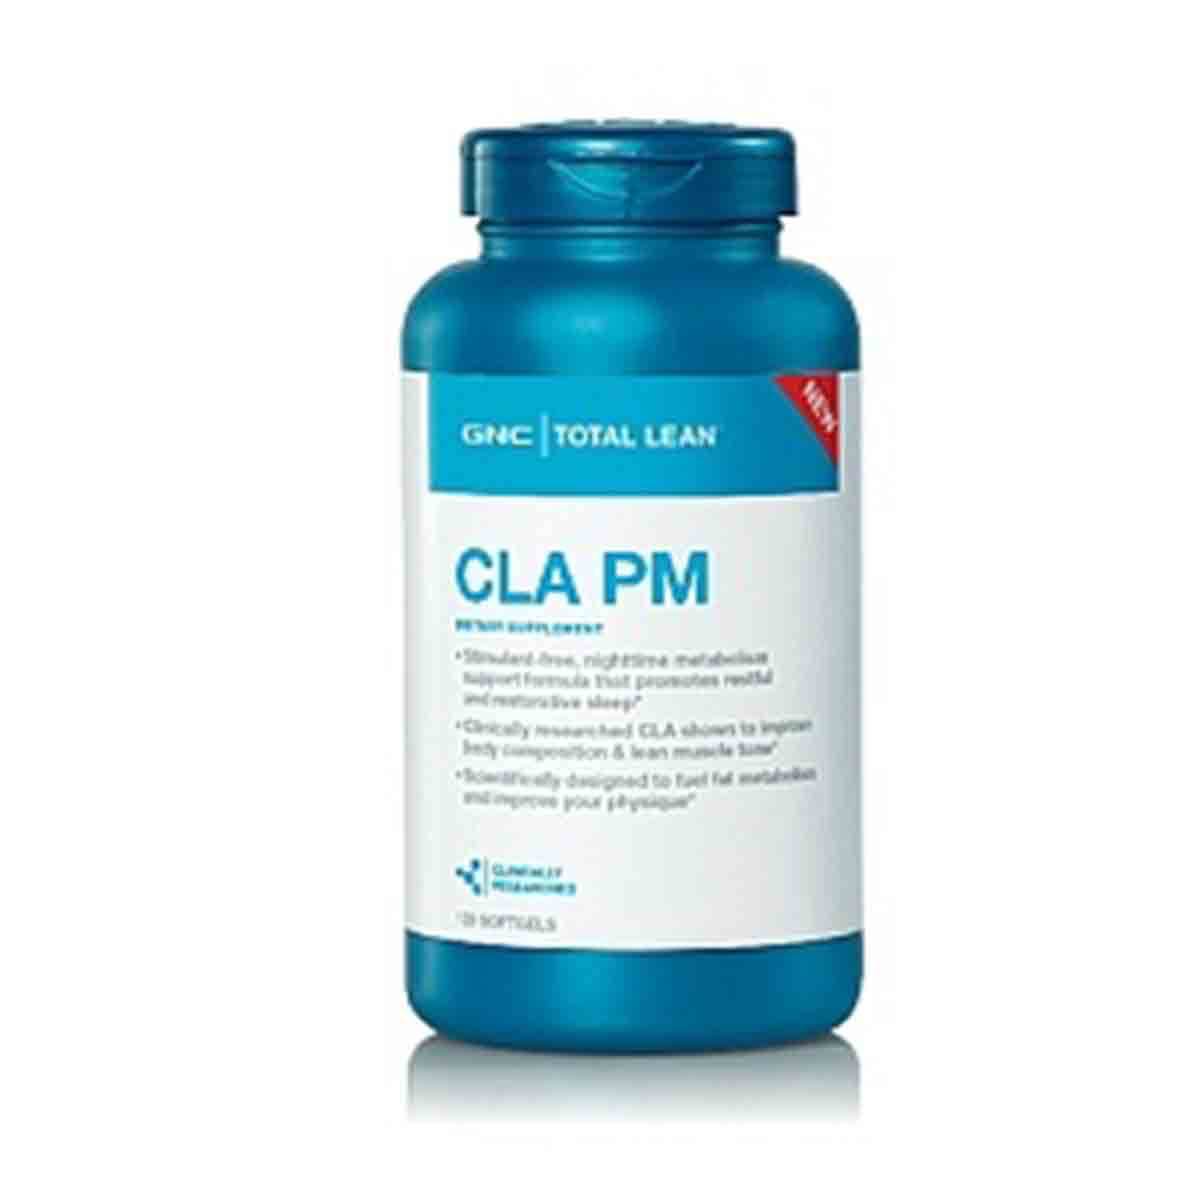 GNC Total Lean CLA PM